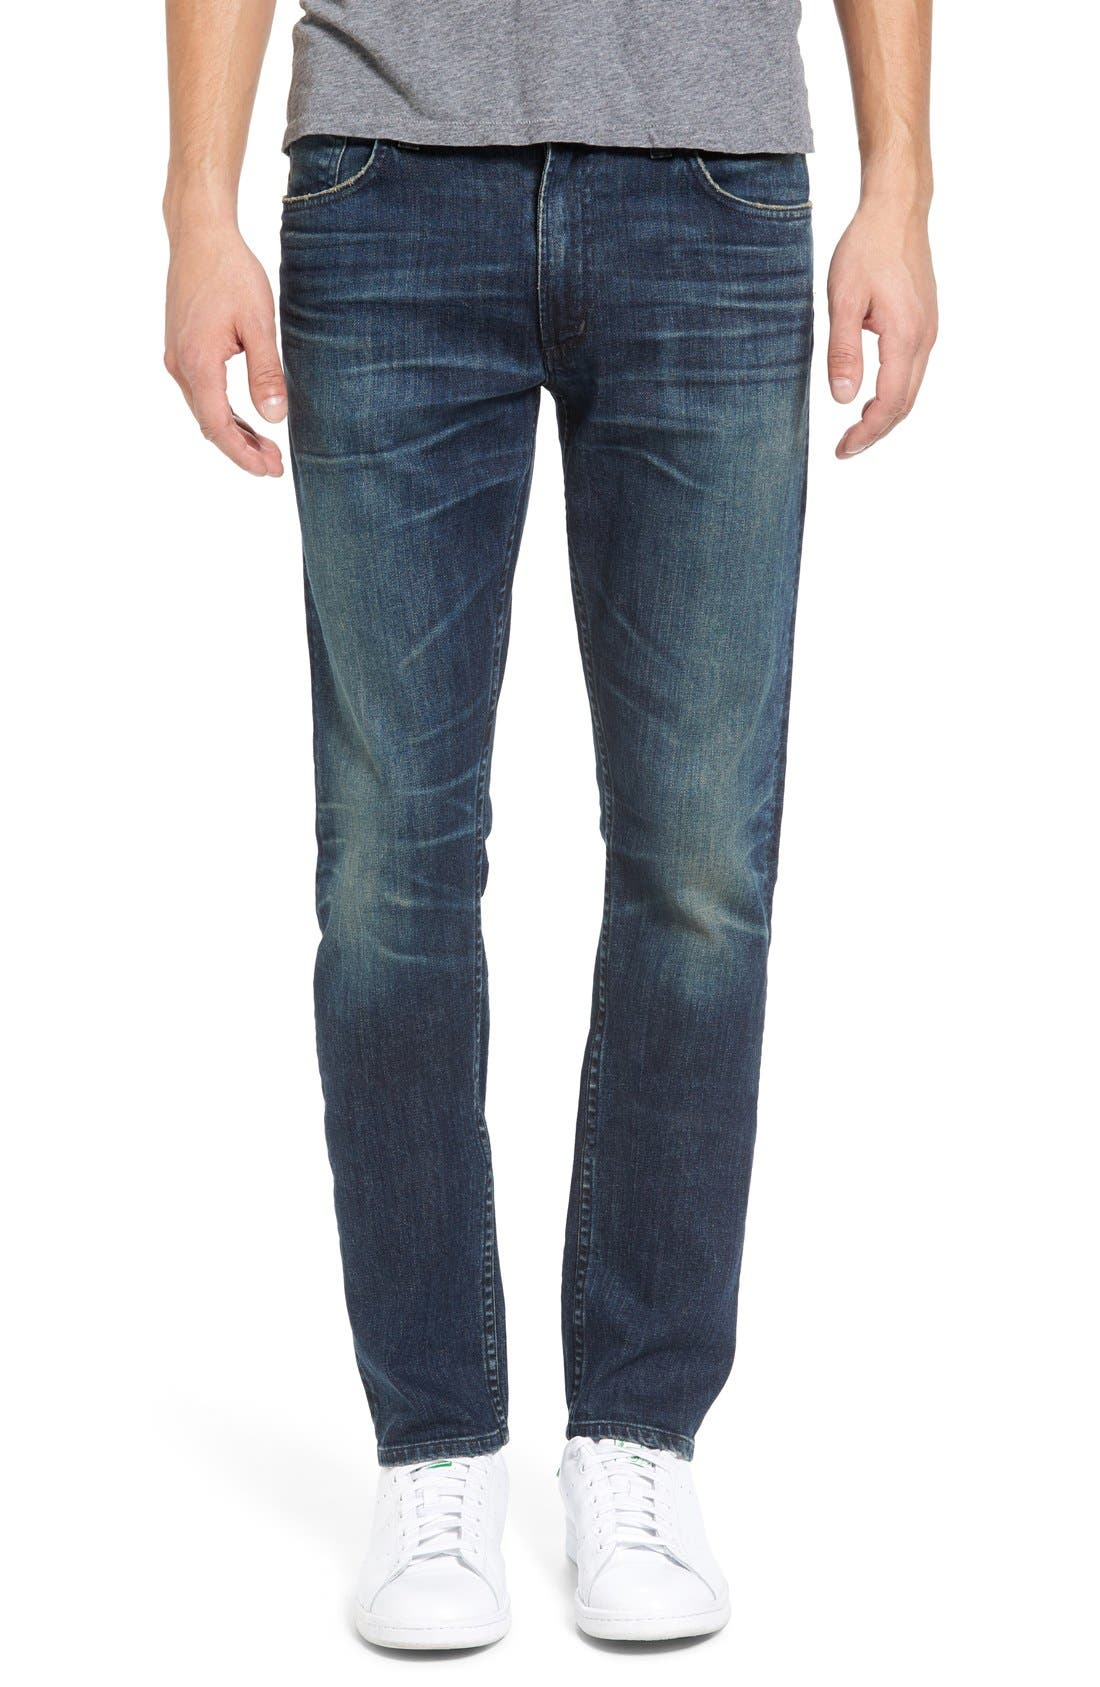 Bowery Slim Fit Jeans,                         Main,                         color, 463